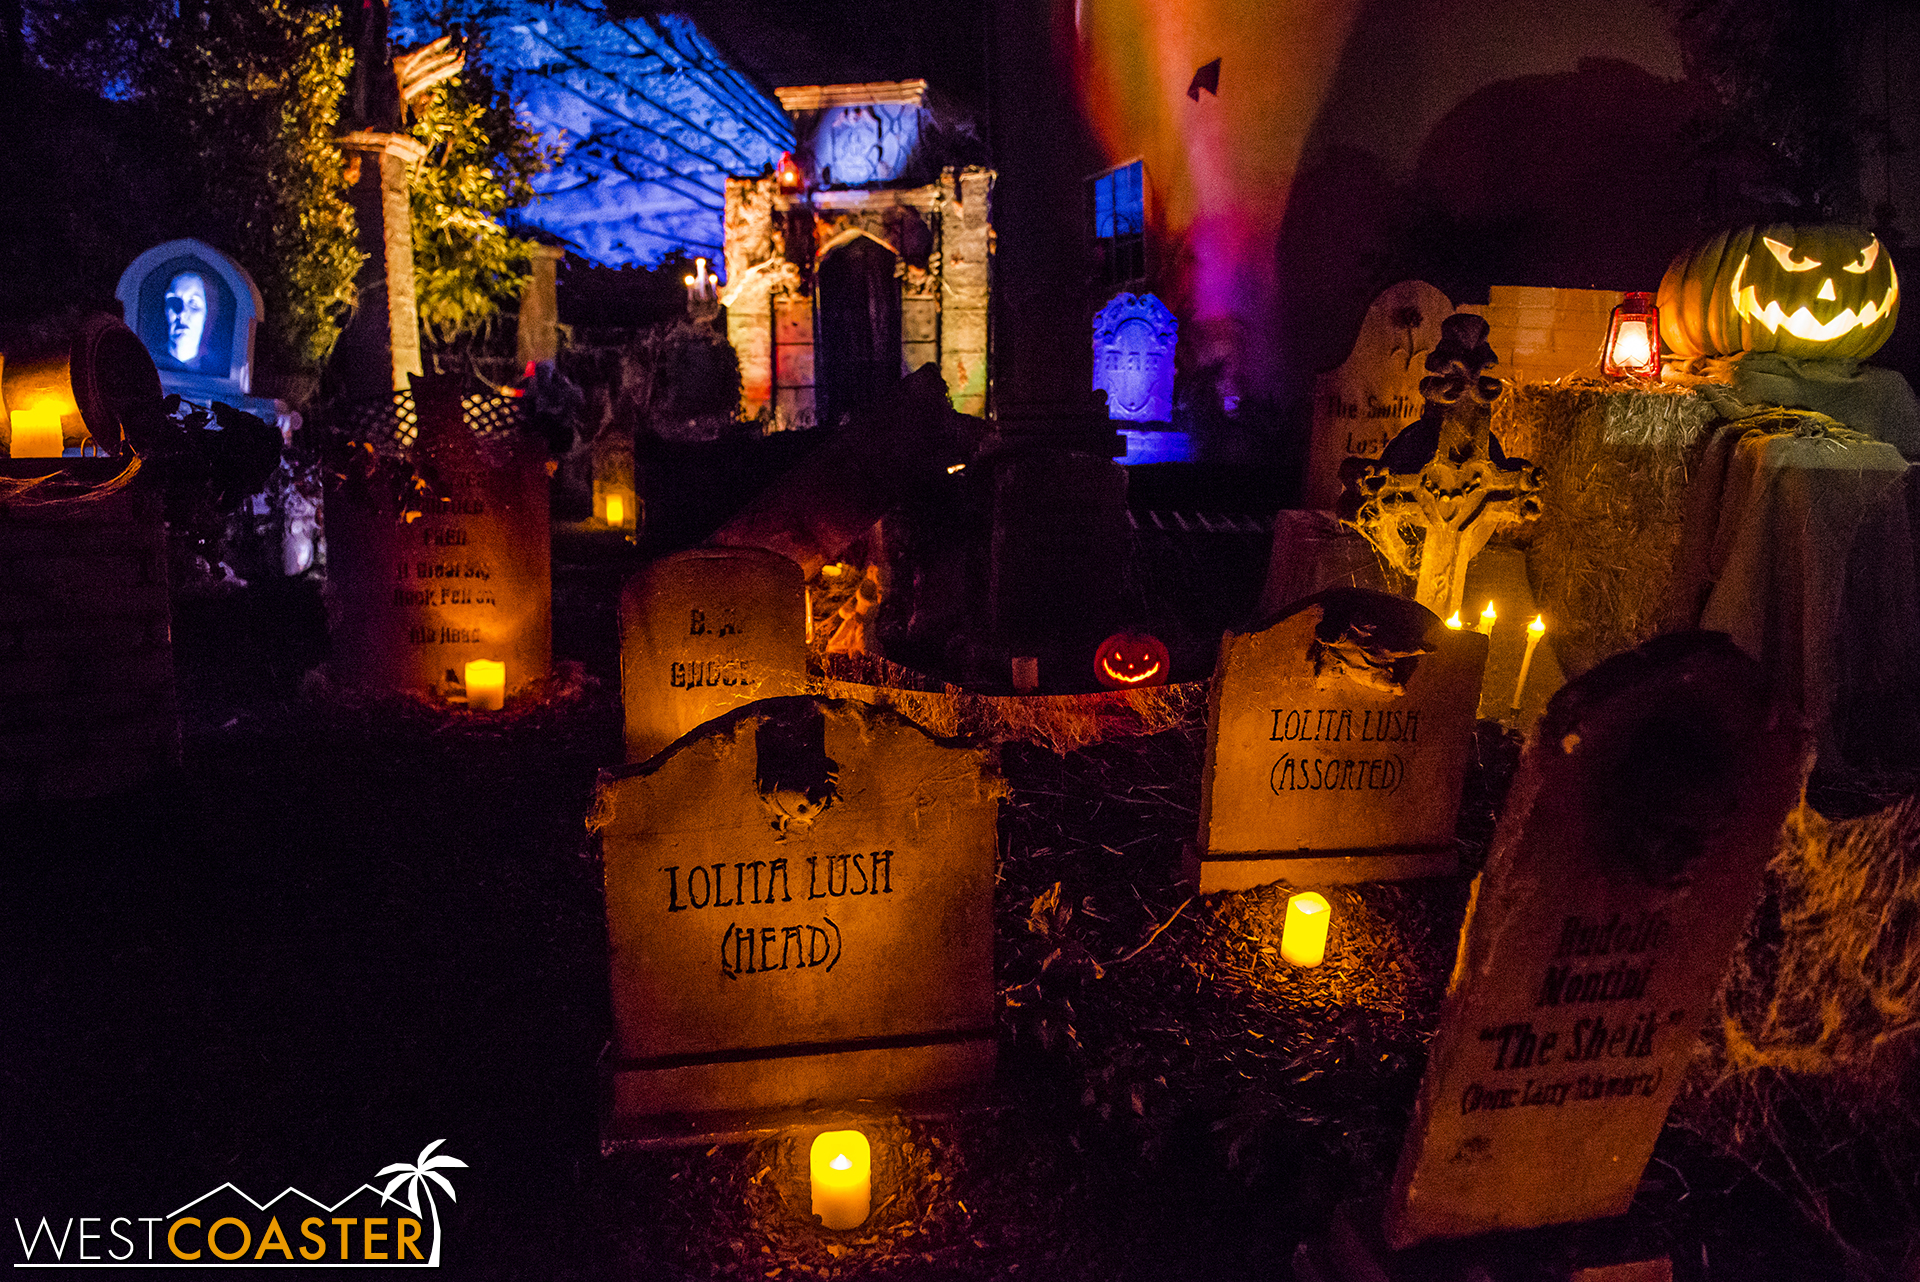 The incredible spectacle that is House at Haunted Hill is back for only three nights this season. Don't miss it, since this event does not always run every year.